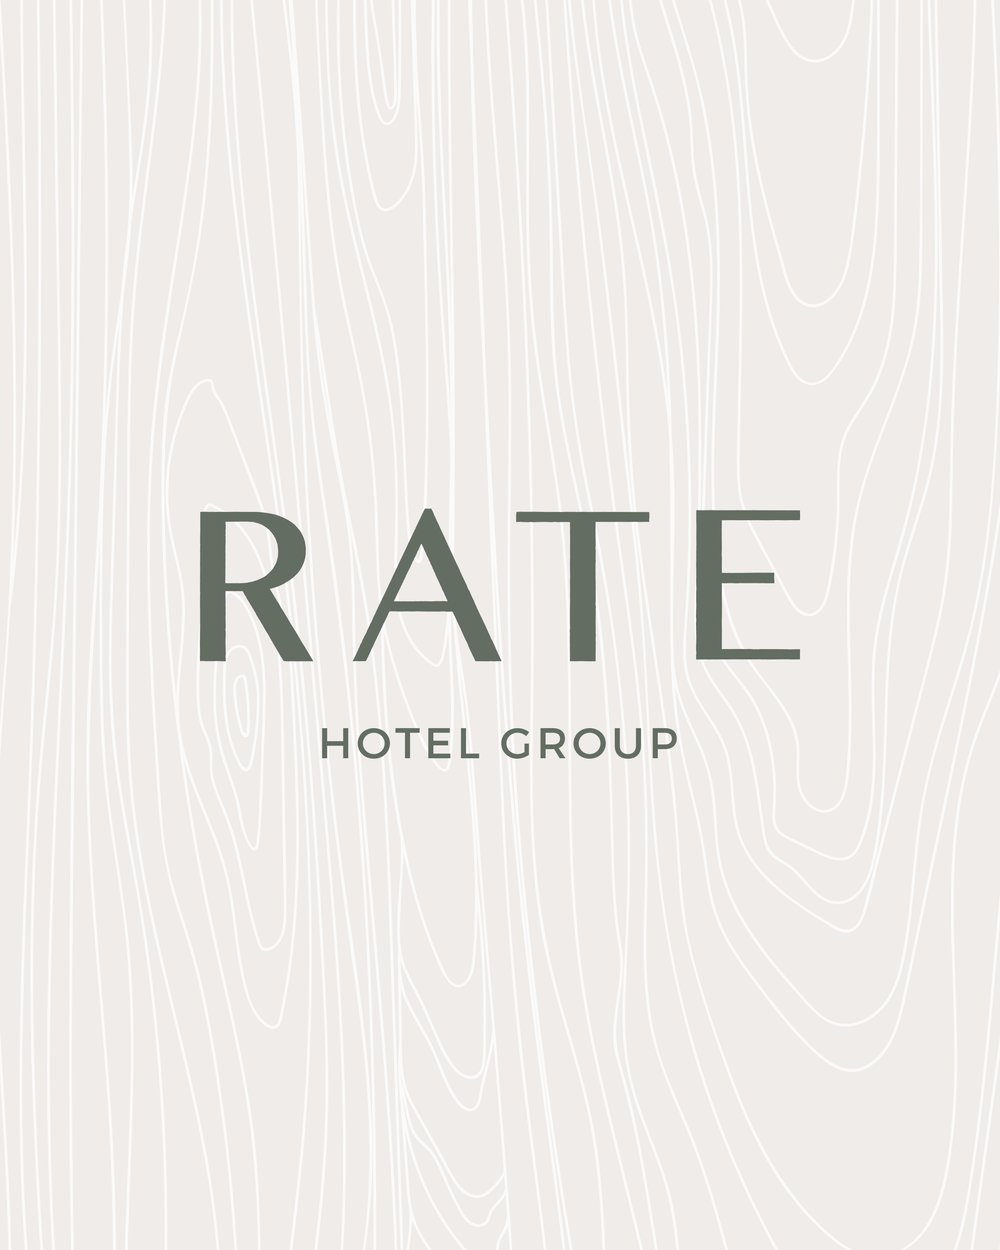 RATE Hotel Group Brand Design | Reux Design Co.